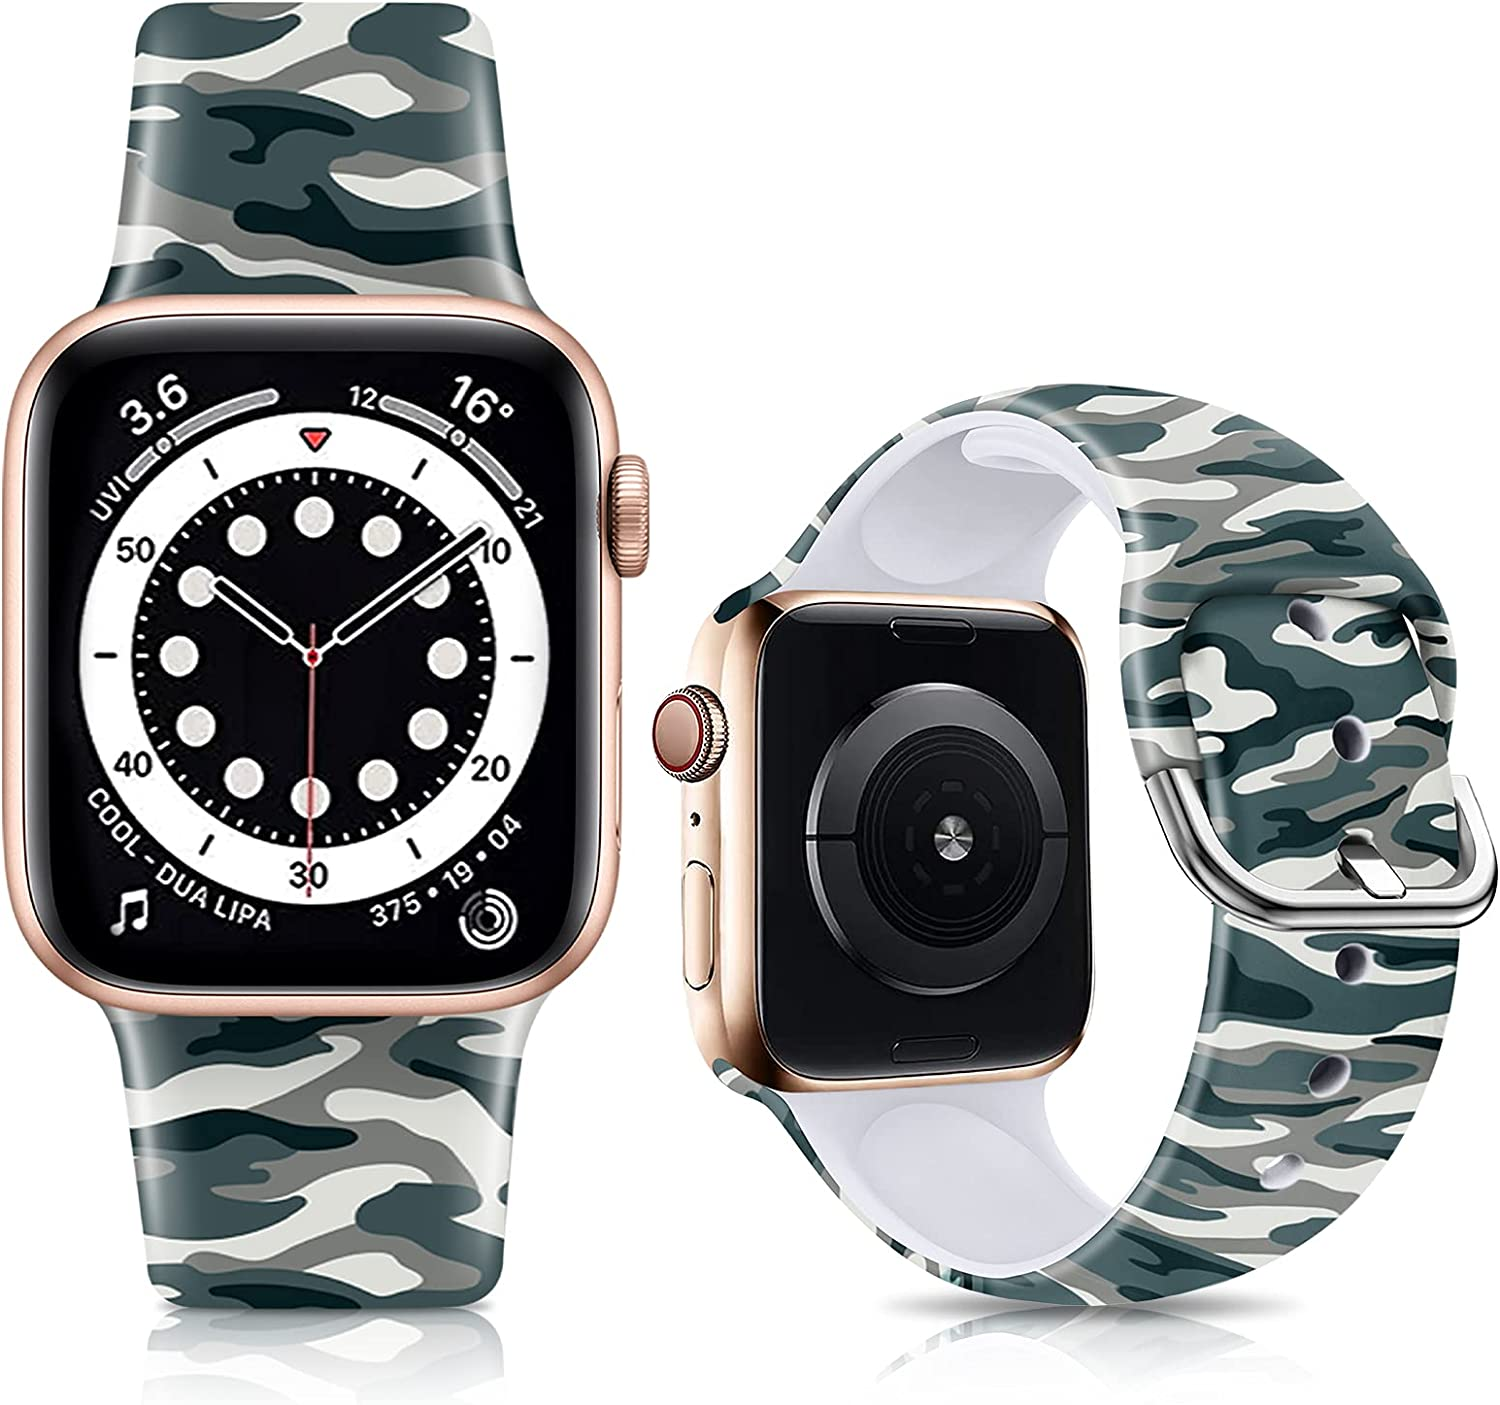 IKANFI Bands Compatible with Apple Watch Band 38mm 40mm 42mm 44mm for Women Men Silicone Floral Pattern Printed Band Strap for iWatch Band SE Series 6 5 4 3 2 1 Wristband